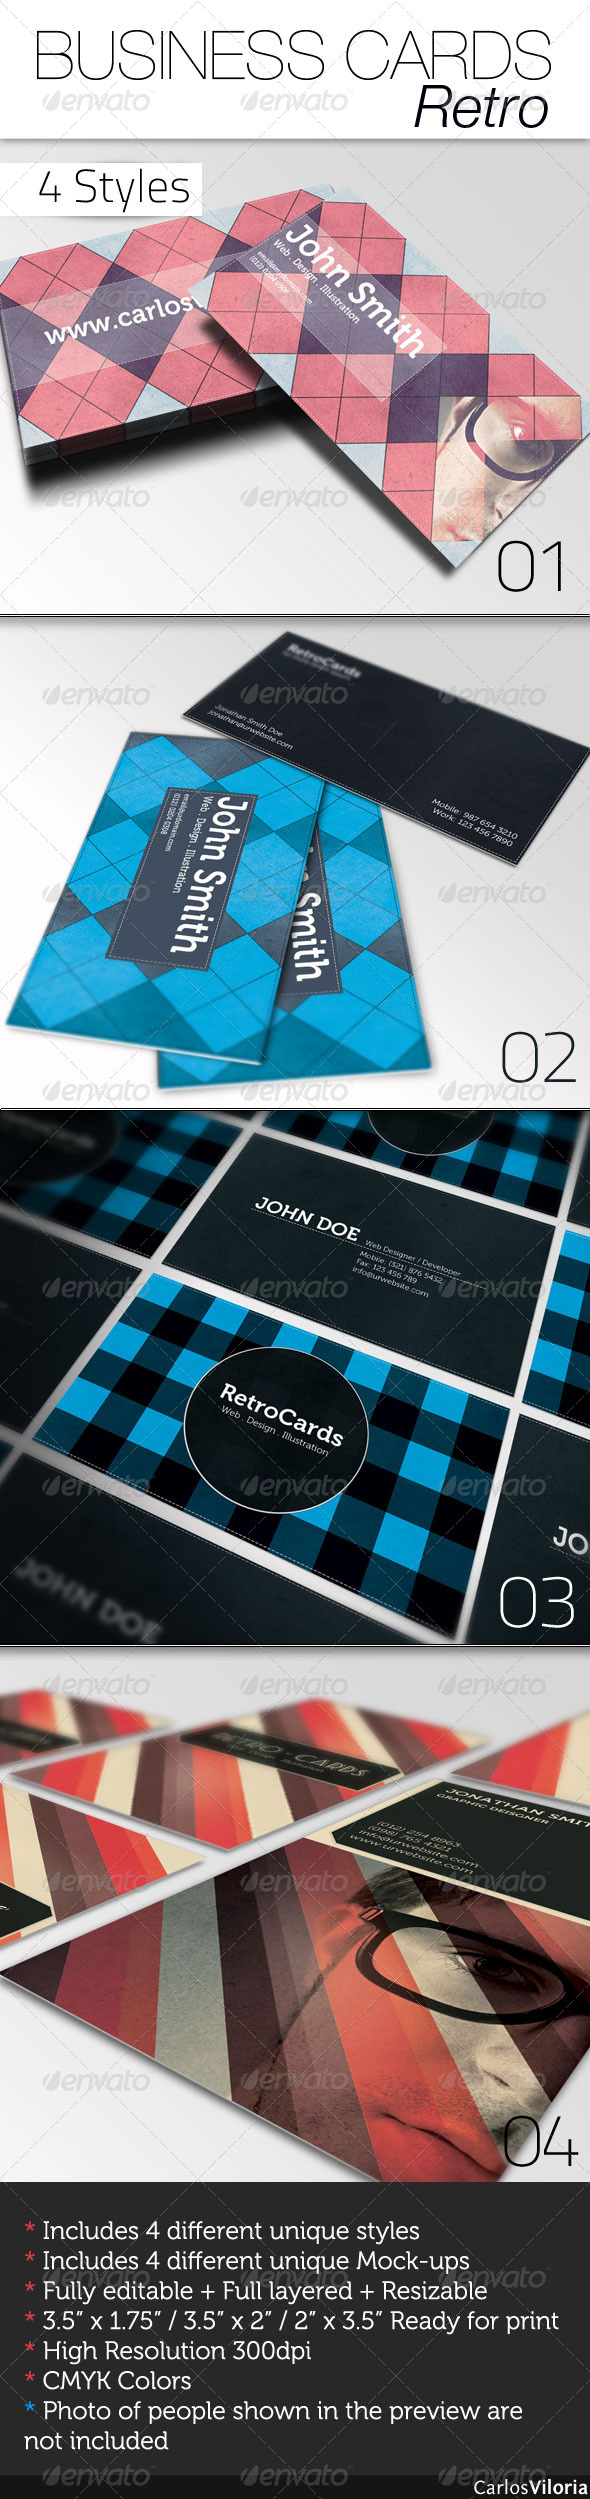 Business Card - Retro - Retro/Vintage Business Cards